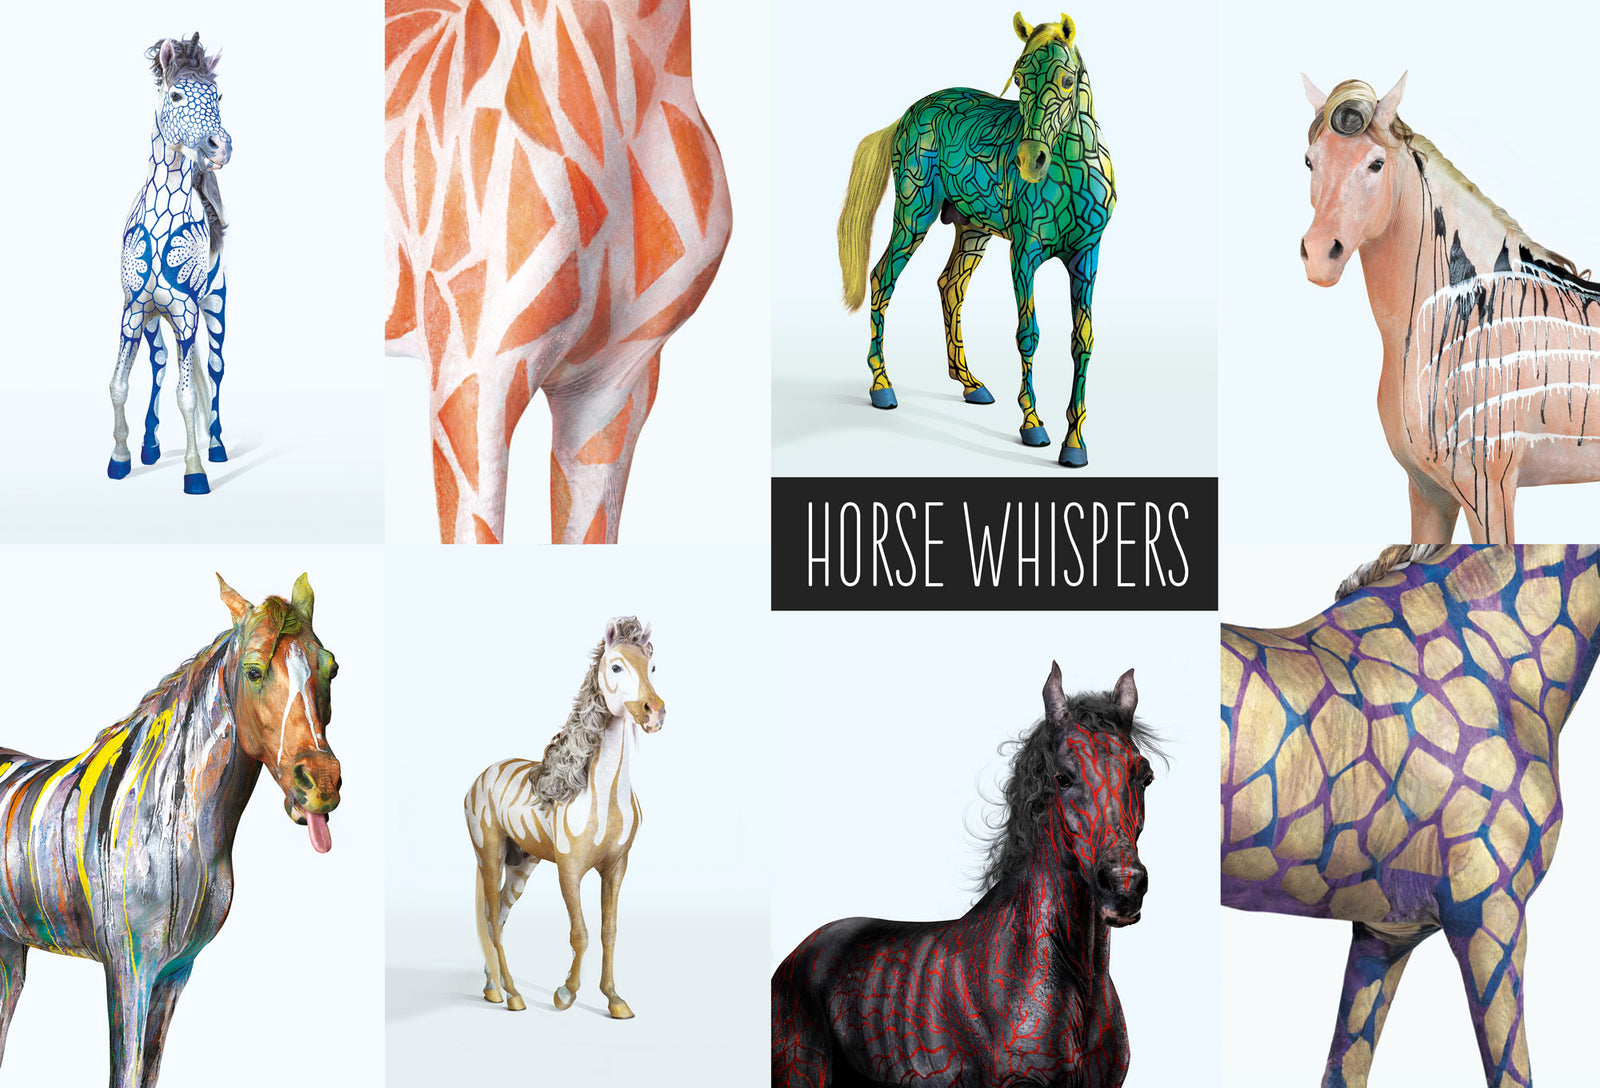 horse whispers by Johny Dar, worldwide the first painted horse